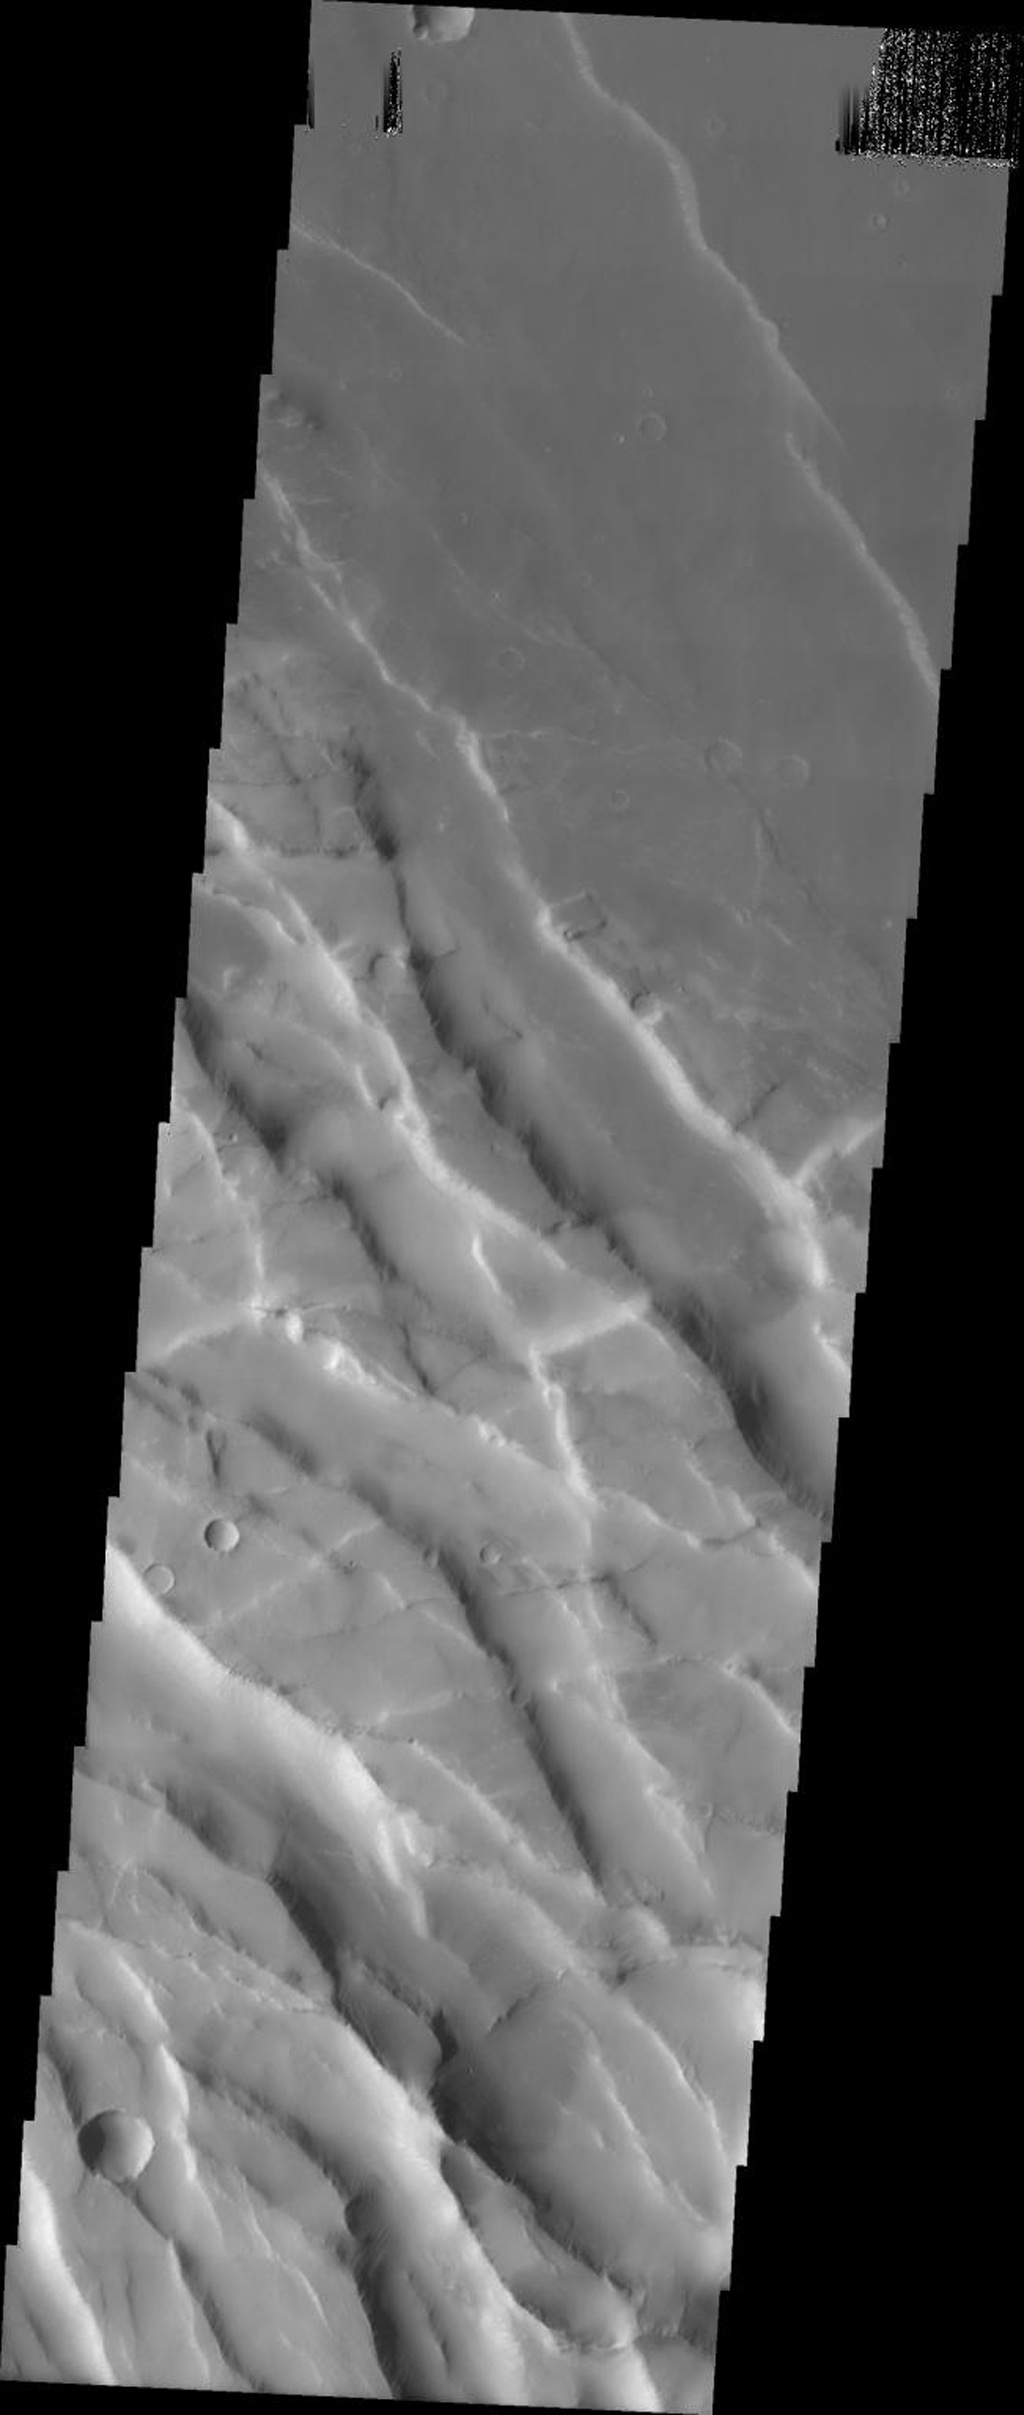 This image taken by NASA's Mars Odyssey shows graben in the region between Arsia Mons and Syria Planum on Mars. The older northeast trending graben have been cut by the younger southeast trending graben.